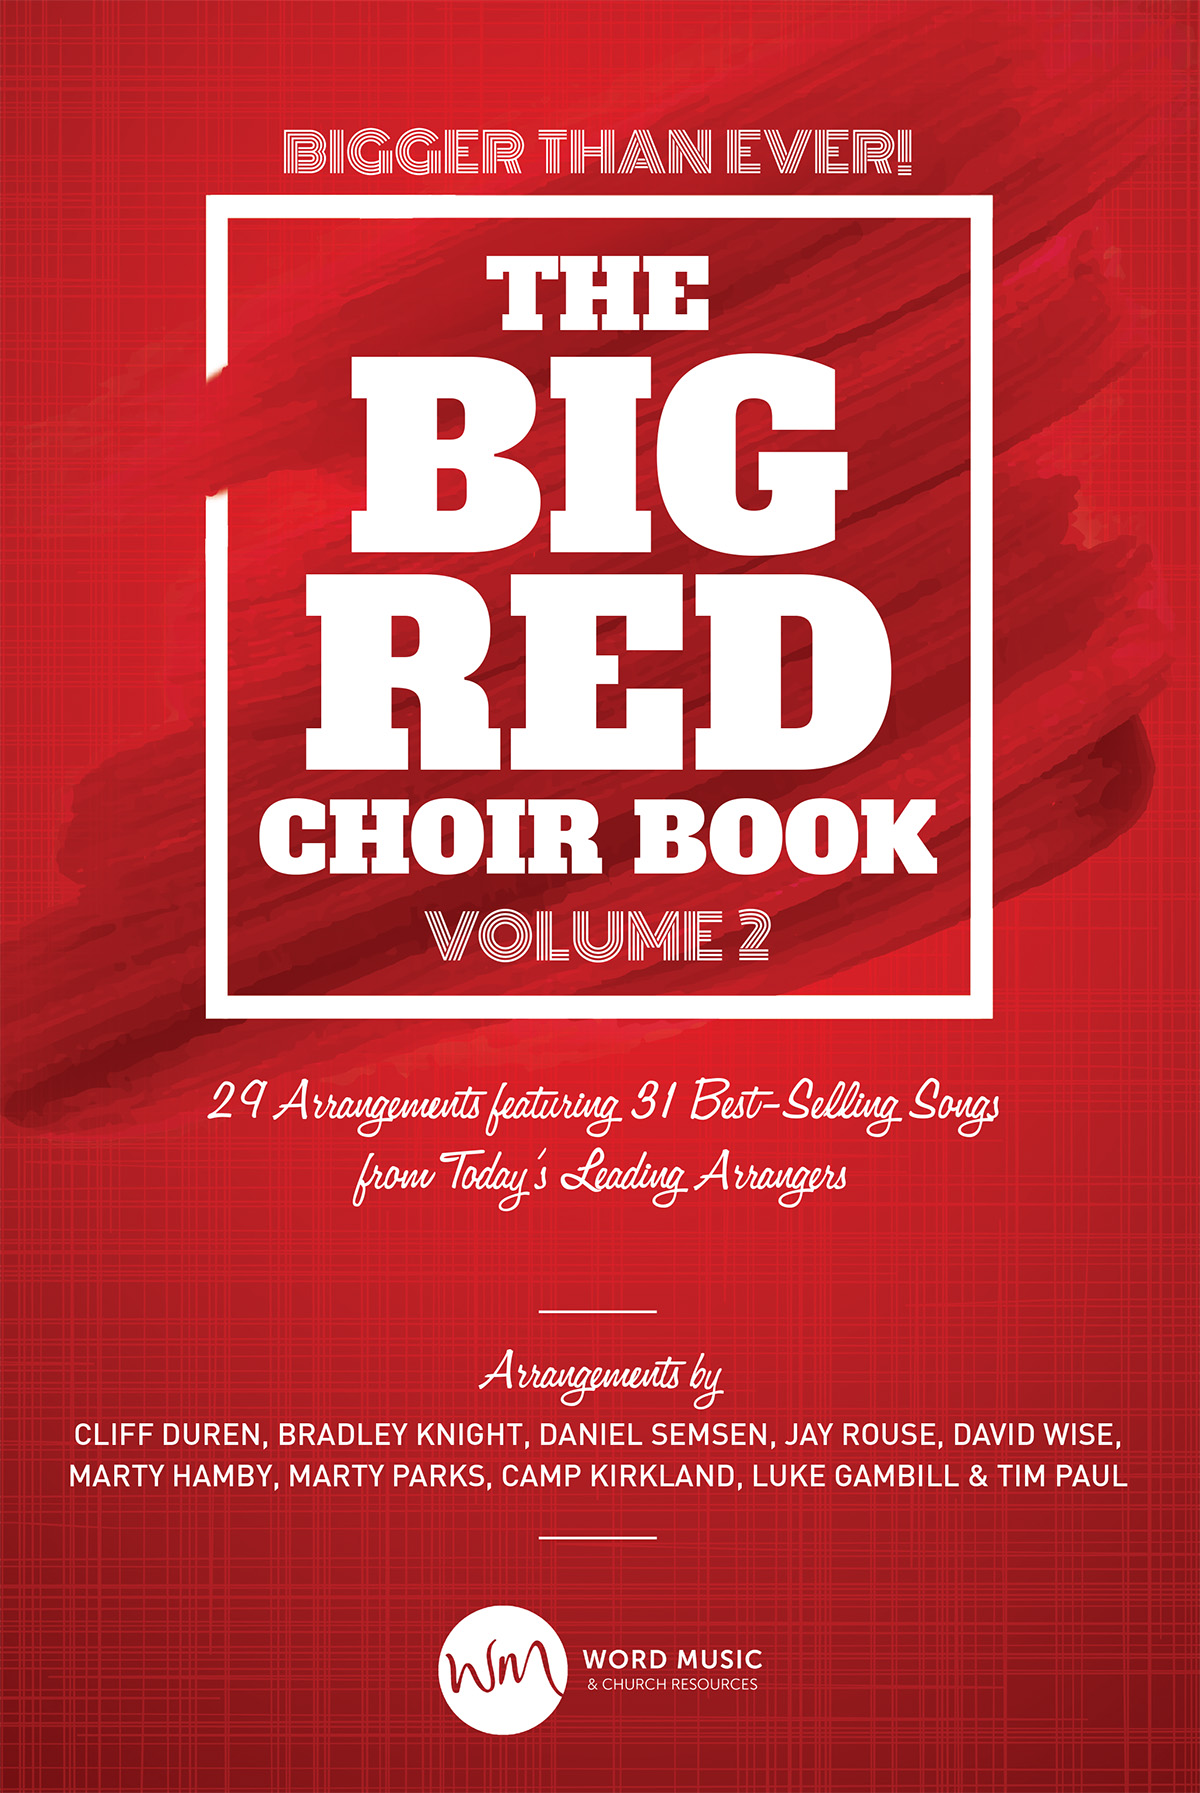 The Big Red Choir Book, Volume 2